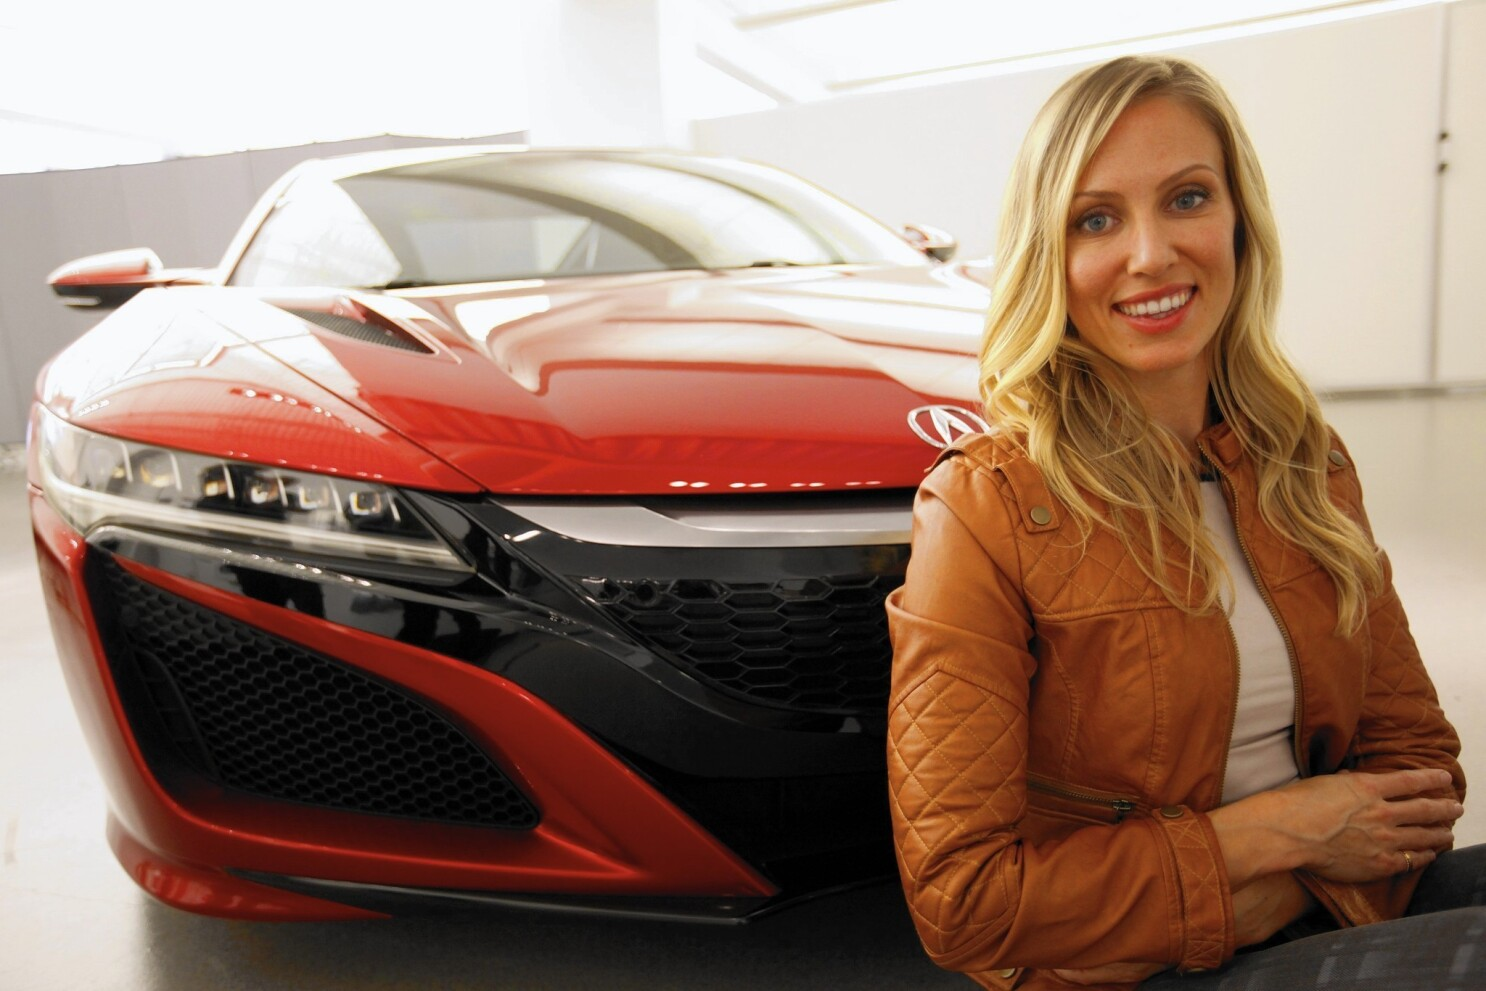 For New Nsx Acura S Designing Woman Los Angeles Times